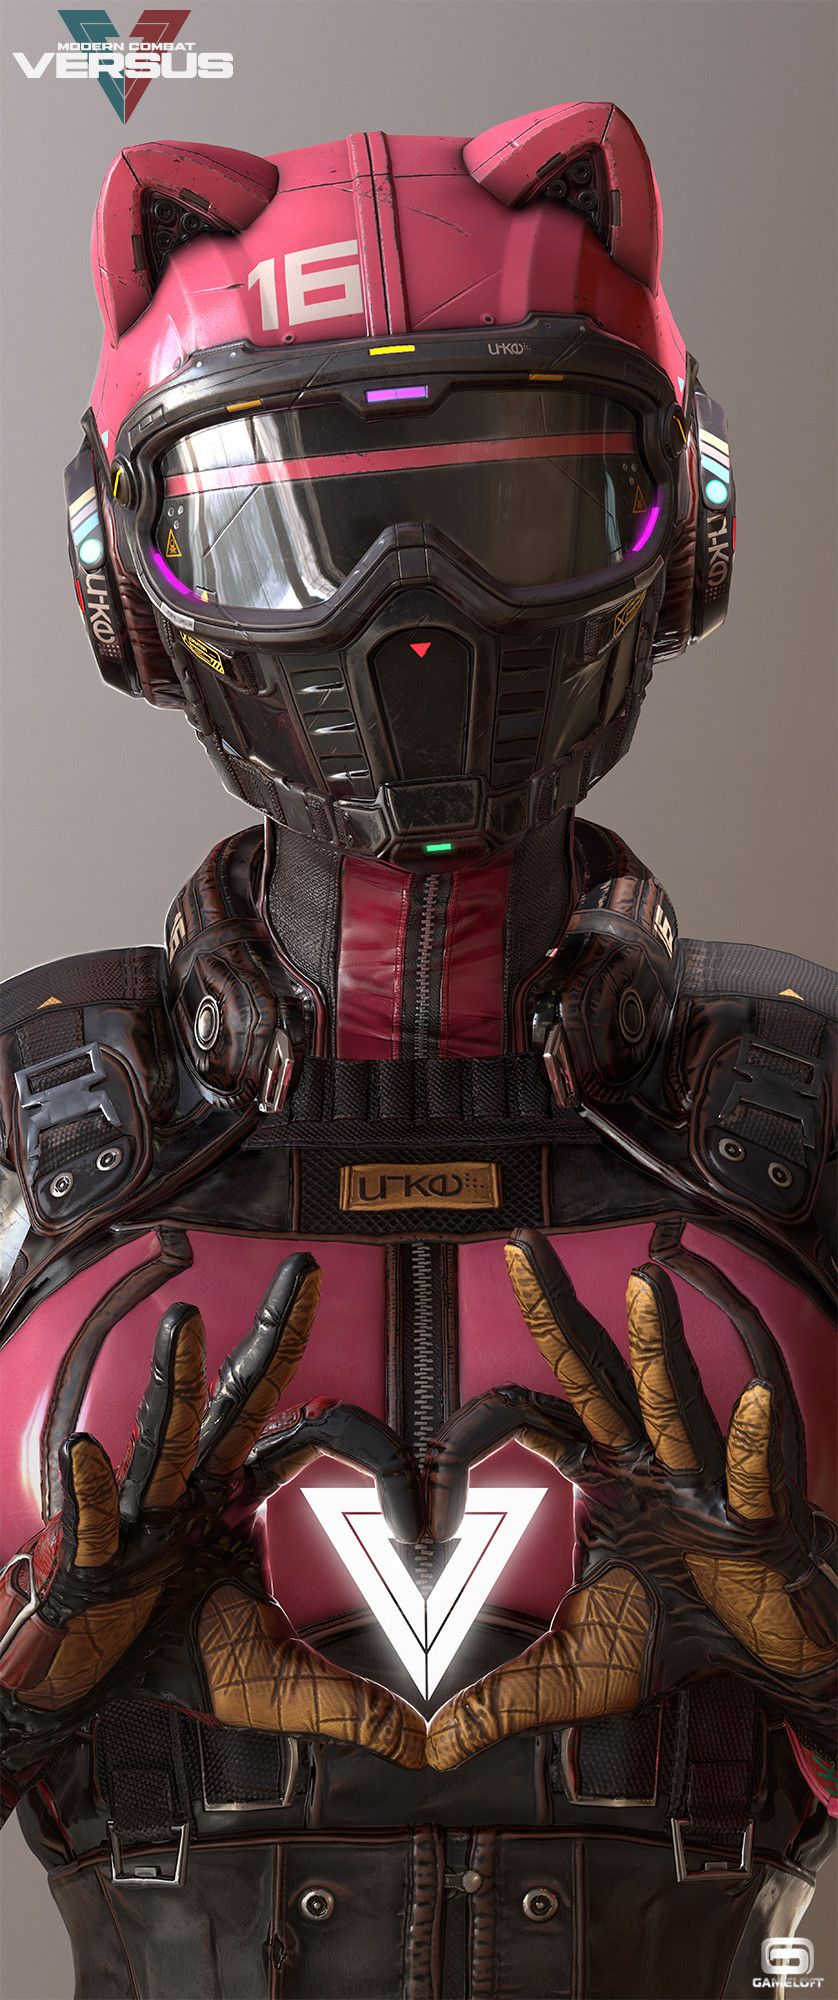 cyberpunk catwoman robotic android concept art character design inspiration ideasParticipant of CGTrader Awards